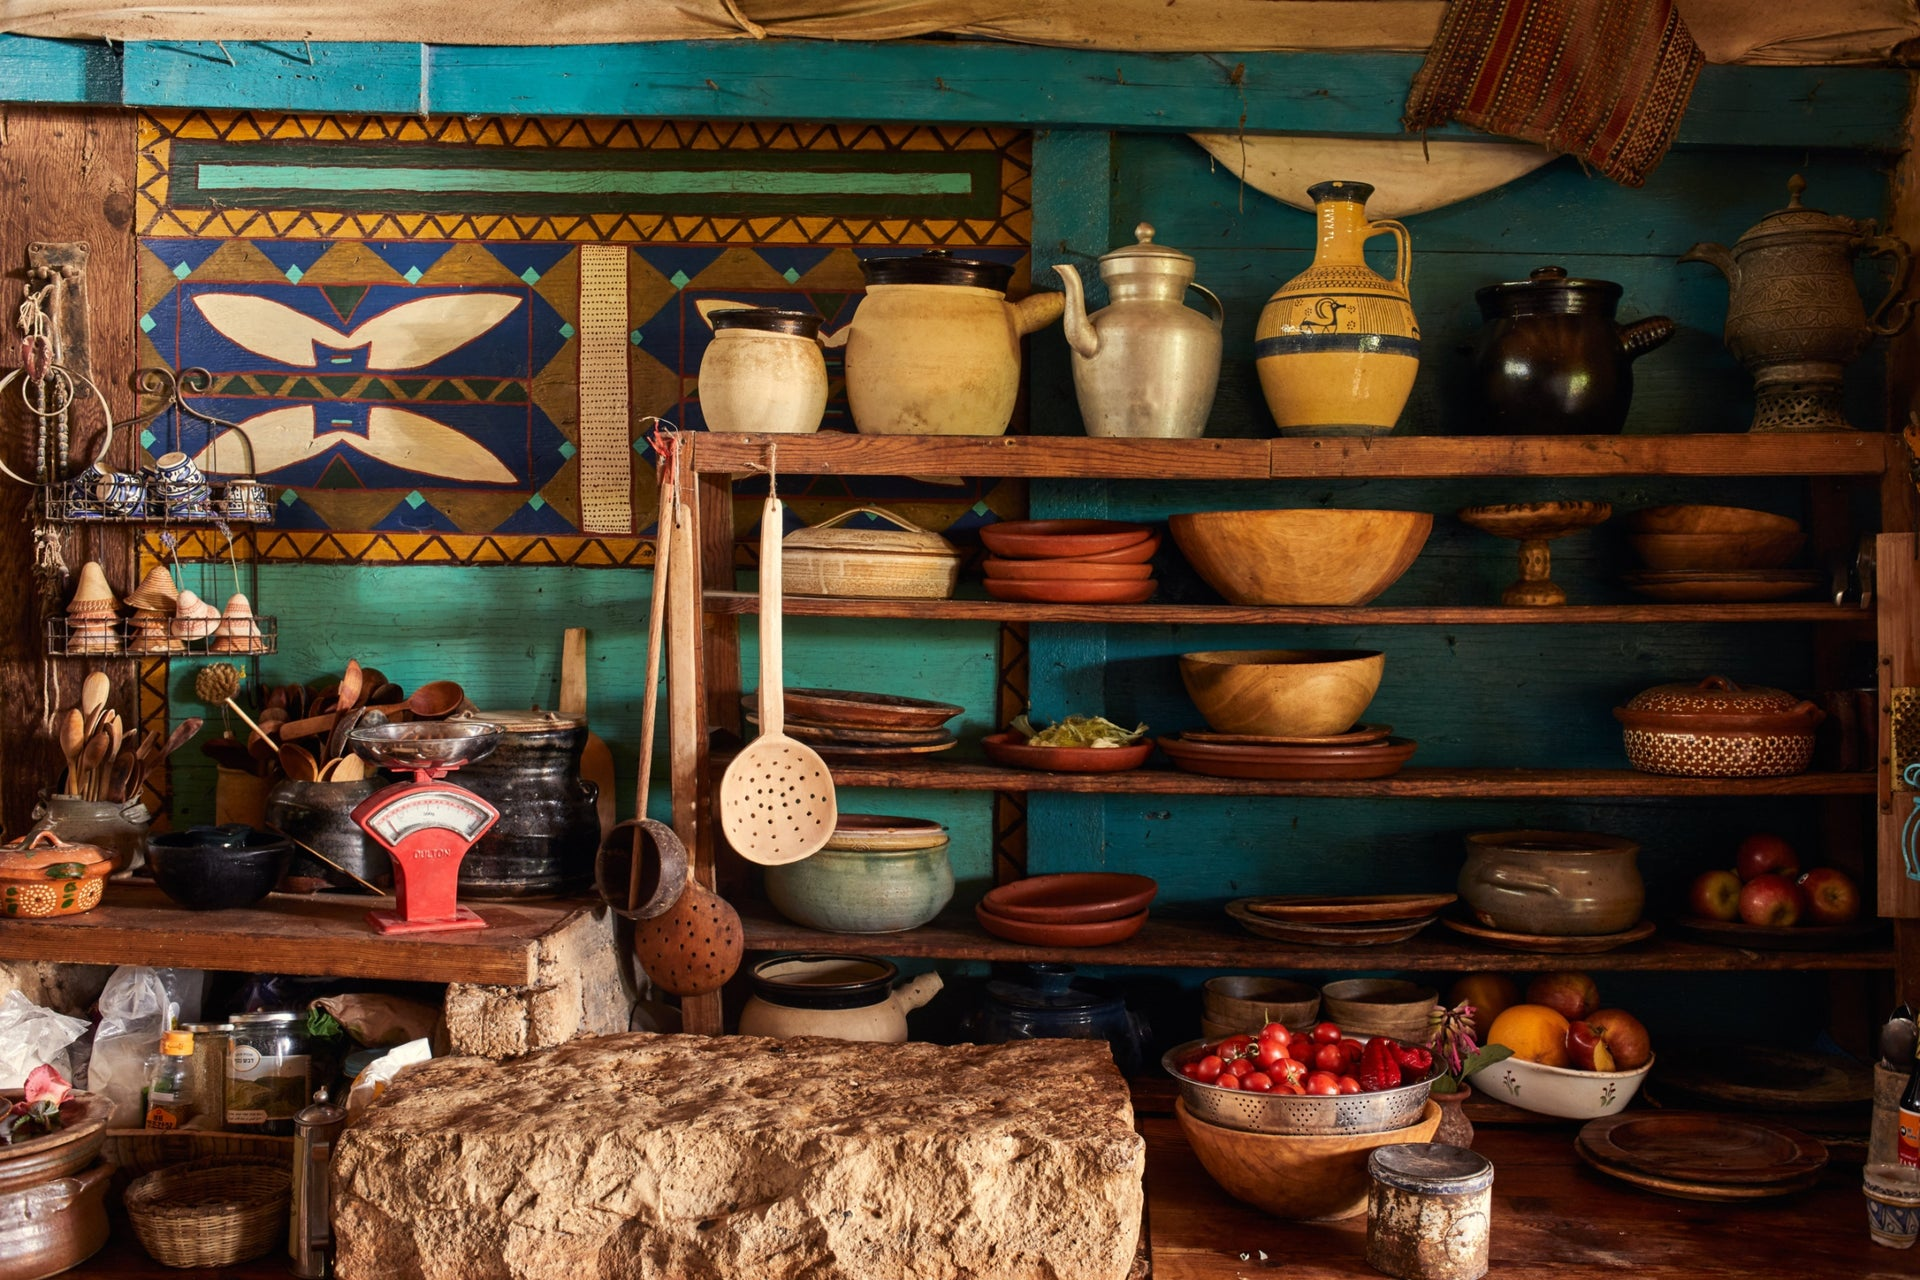 Cooking utensils at Goats with the Wind. Whatever the reason, the cheeses prepared there have a saliently distinctive taste.